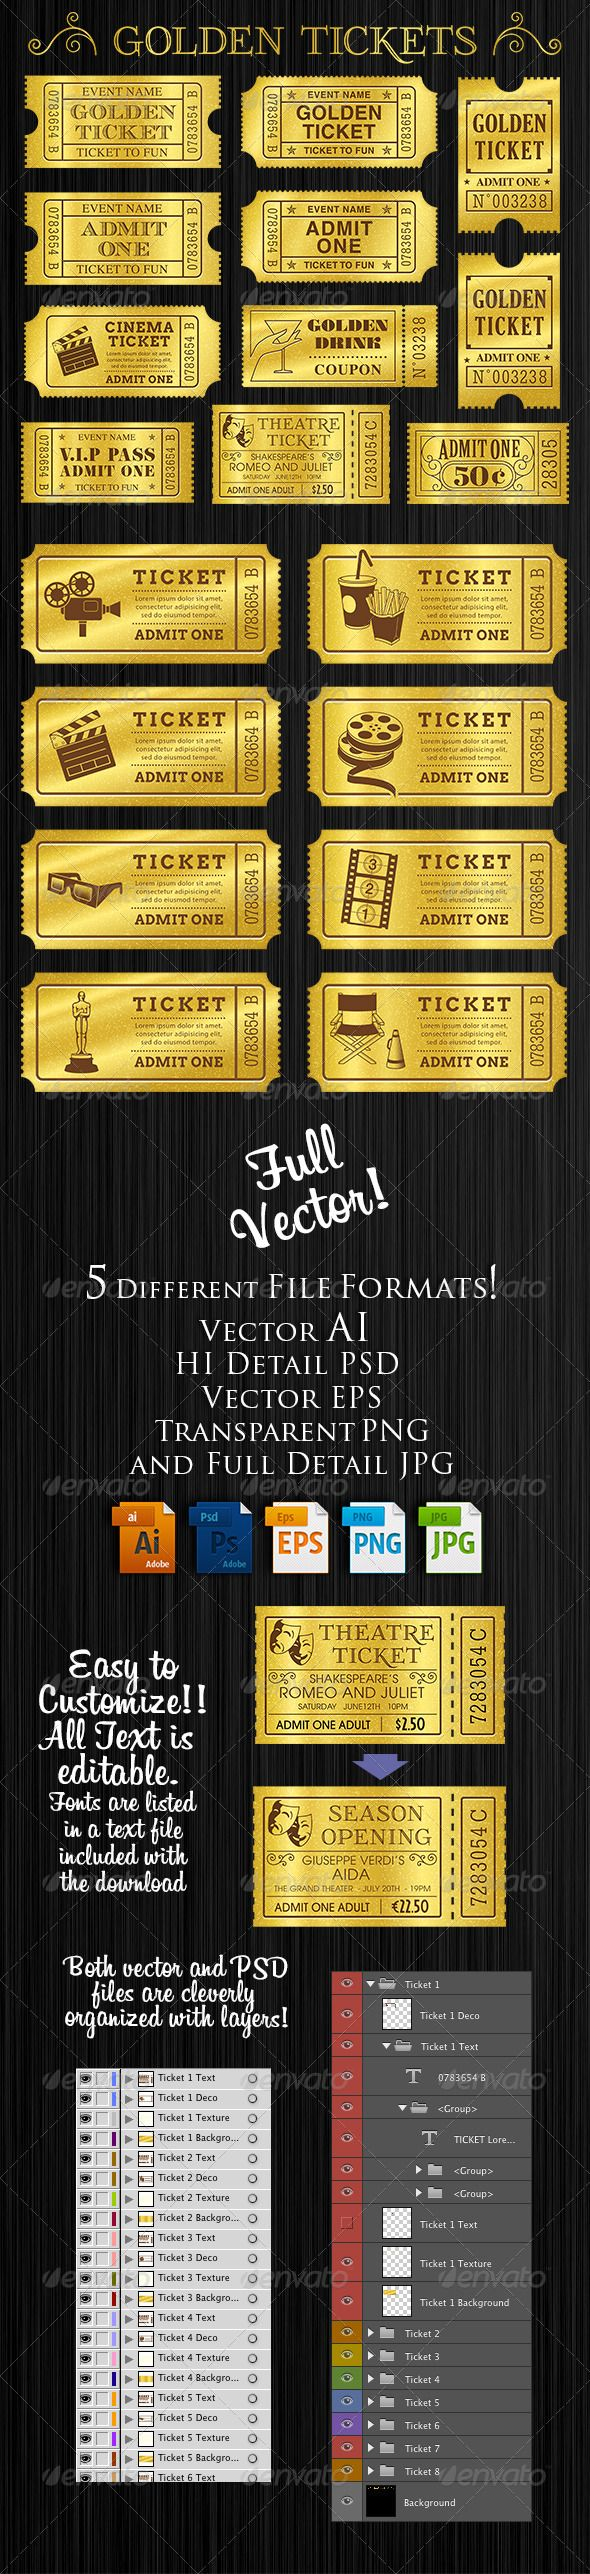 Admit One Ticket Template Free Amazing Golden Tickets Templates Set  Services Commercial  Shopping .